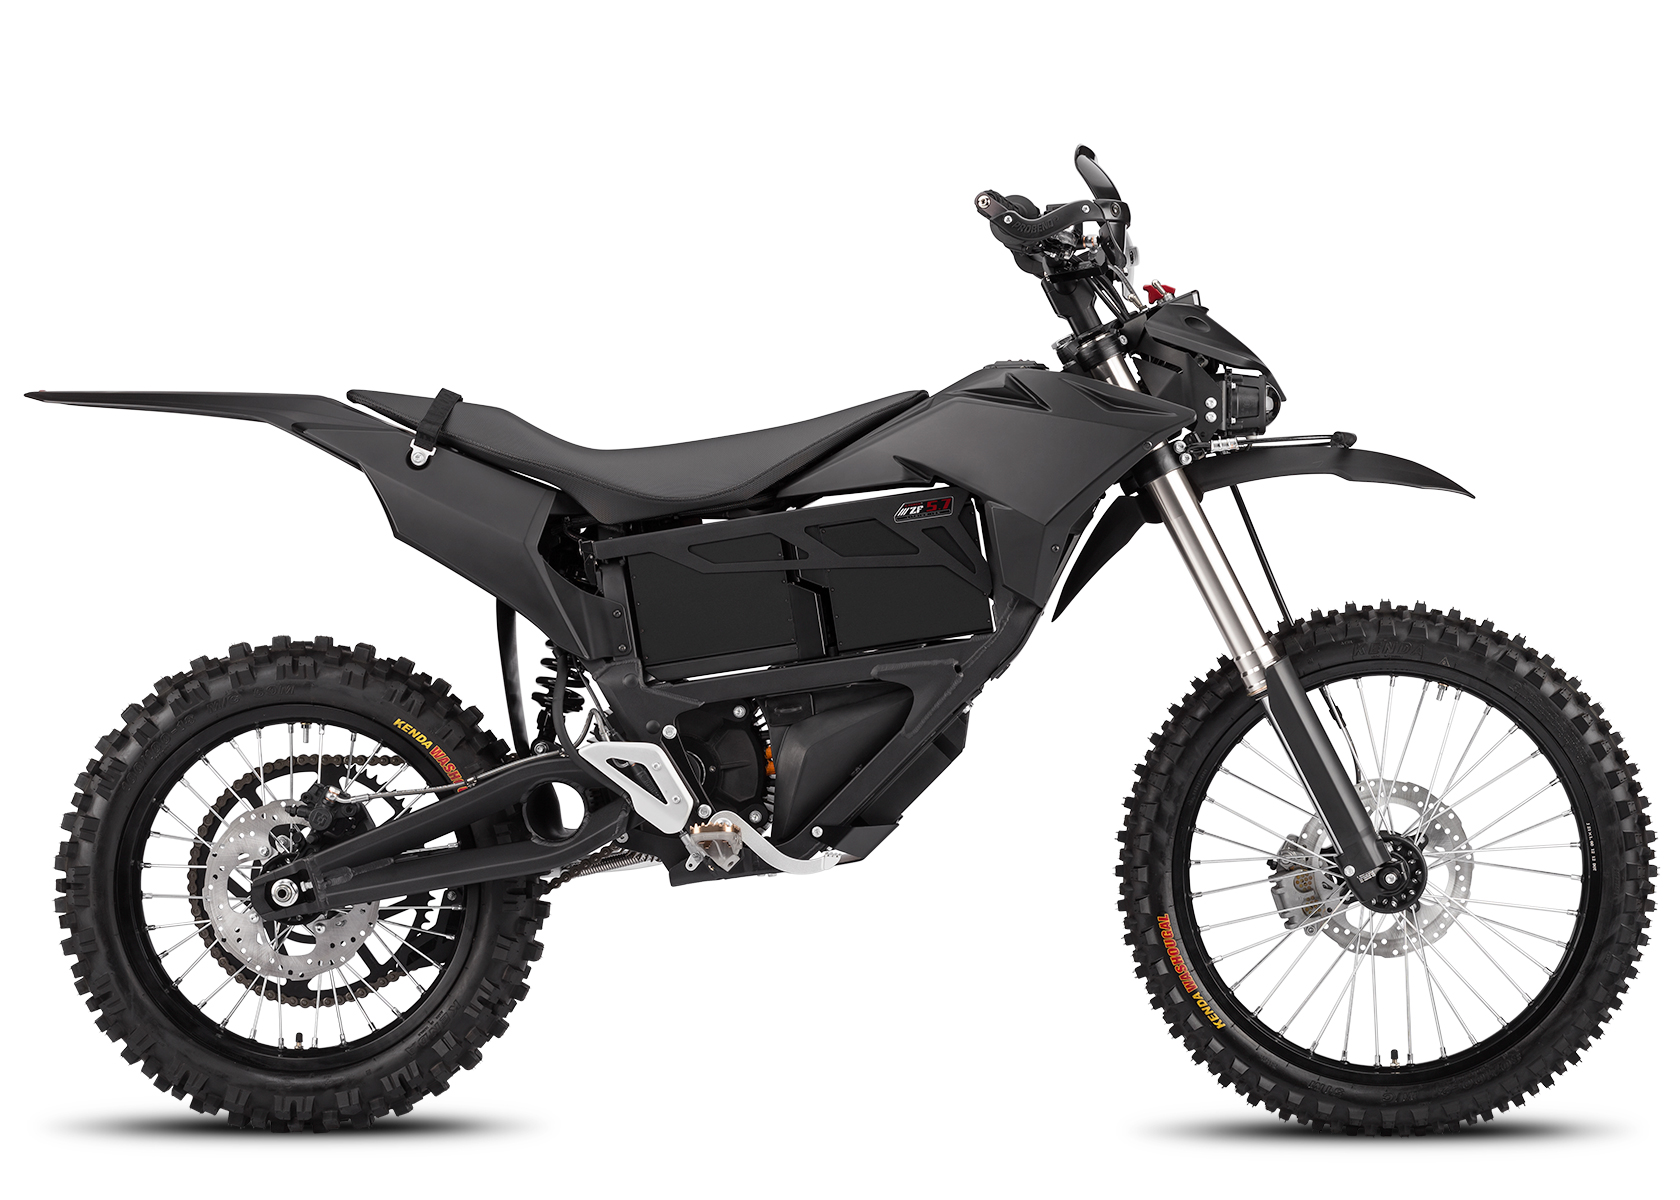 2014 Zero MMX Electric Motorcycle: Right profile, White Background